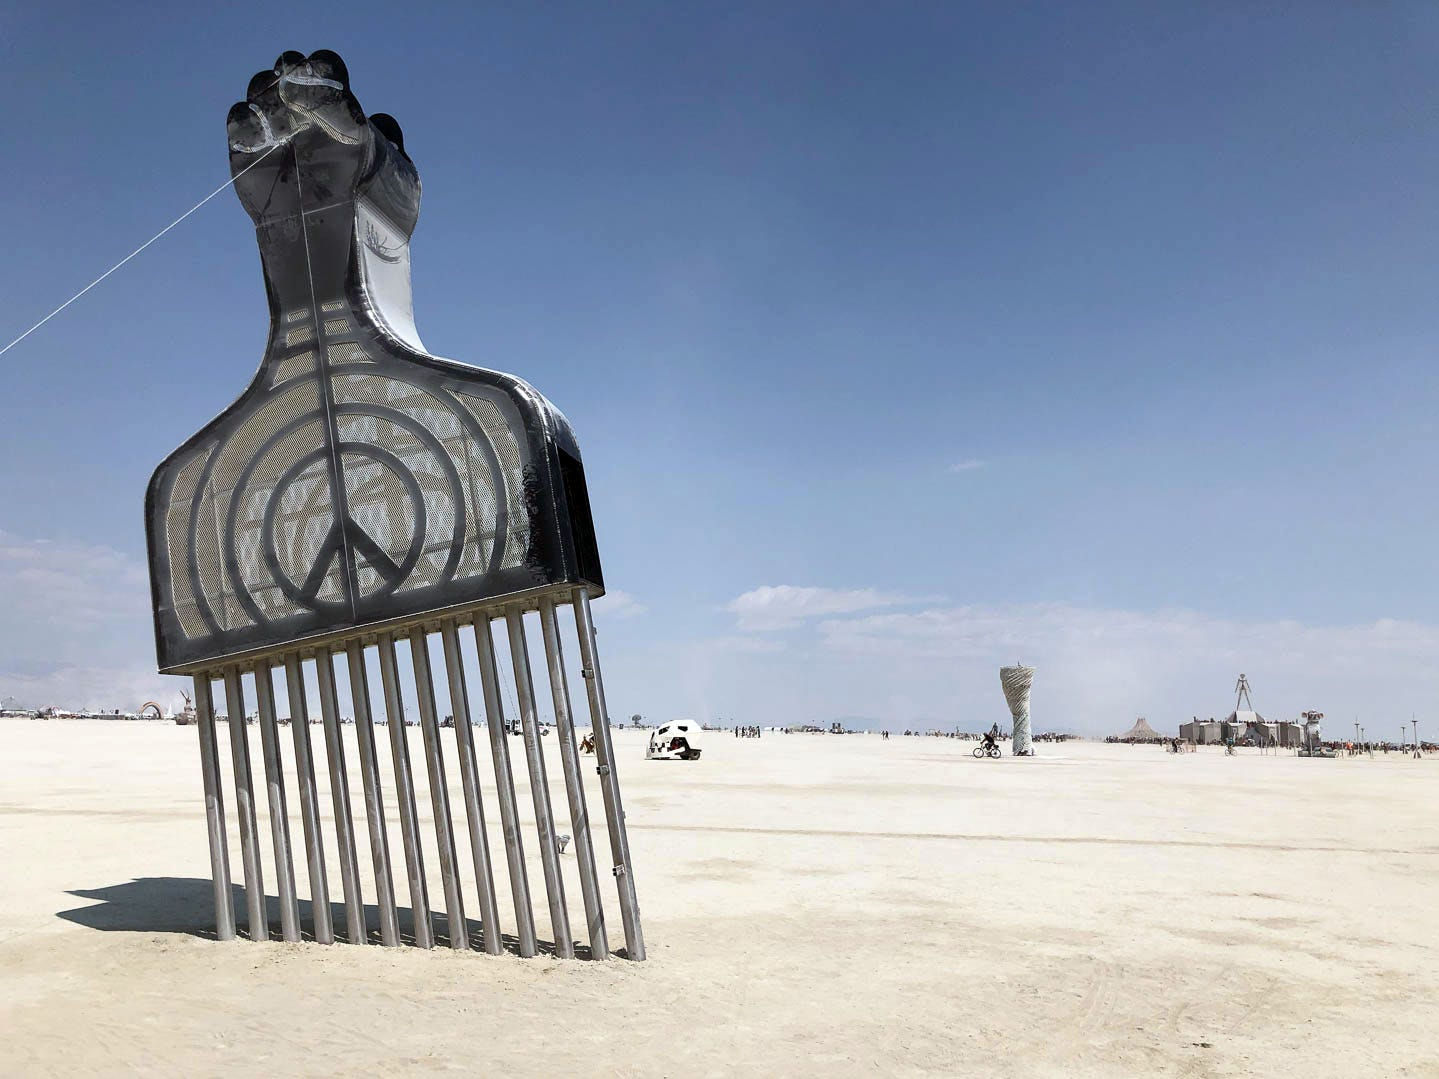 "A large afro pick juts out of the playa at Burning Man 2018. ""A symbol of community and comradeship, the afro pick exists today as many things to different people: it is worn as adornment, a political emblem and signature of collective identity,"" according to the artist's statement. ""The temporary monument would be placed as a symbol and site, to highlight ideas related to community, strength, perseverance, comradeship, and resistance to oppression, equal justice and belonging."